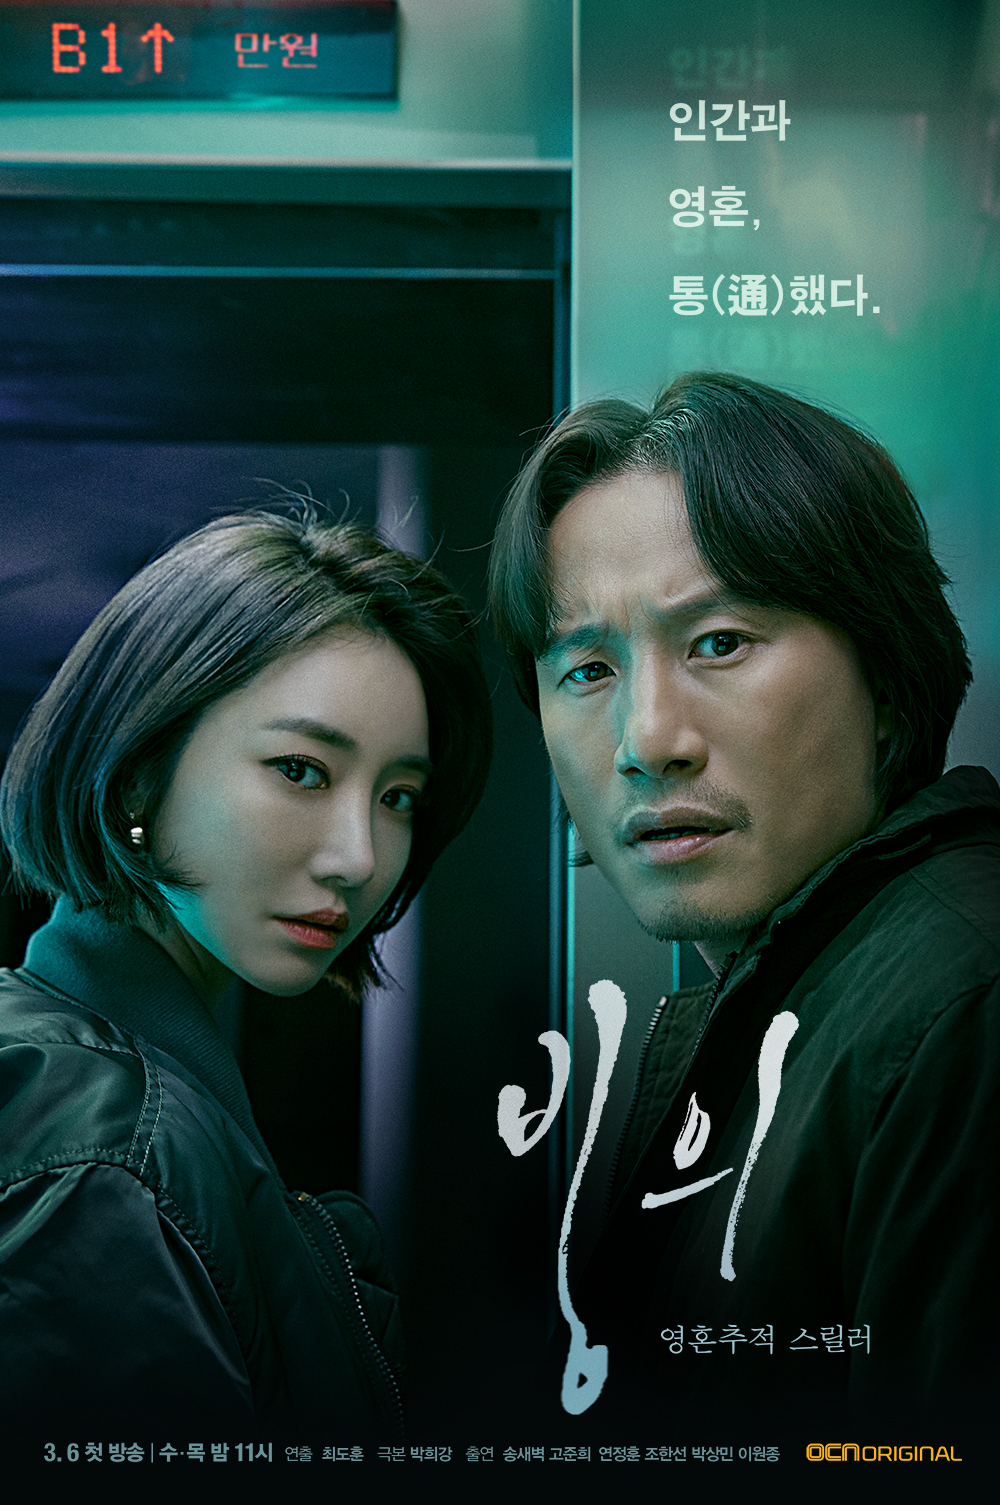 Possessed [2019 South Korea Series] 16 episodes END (3) Fantasy, Thriller, Mystery